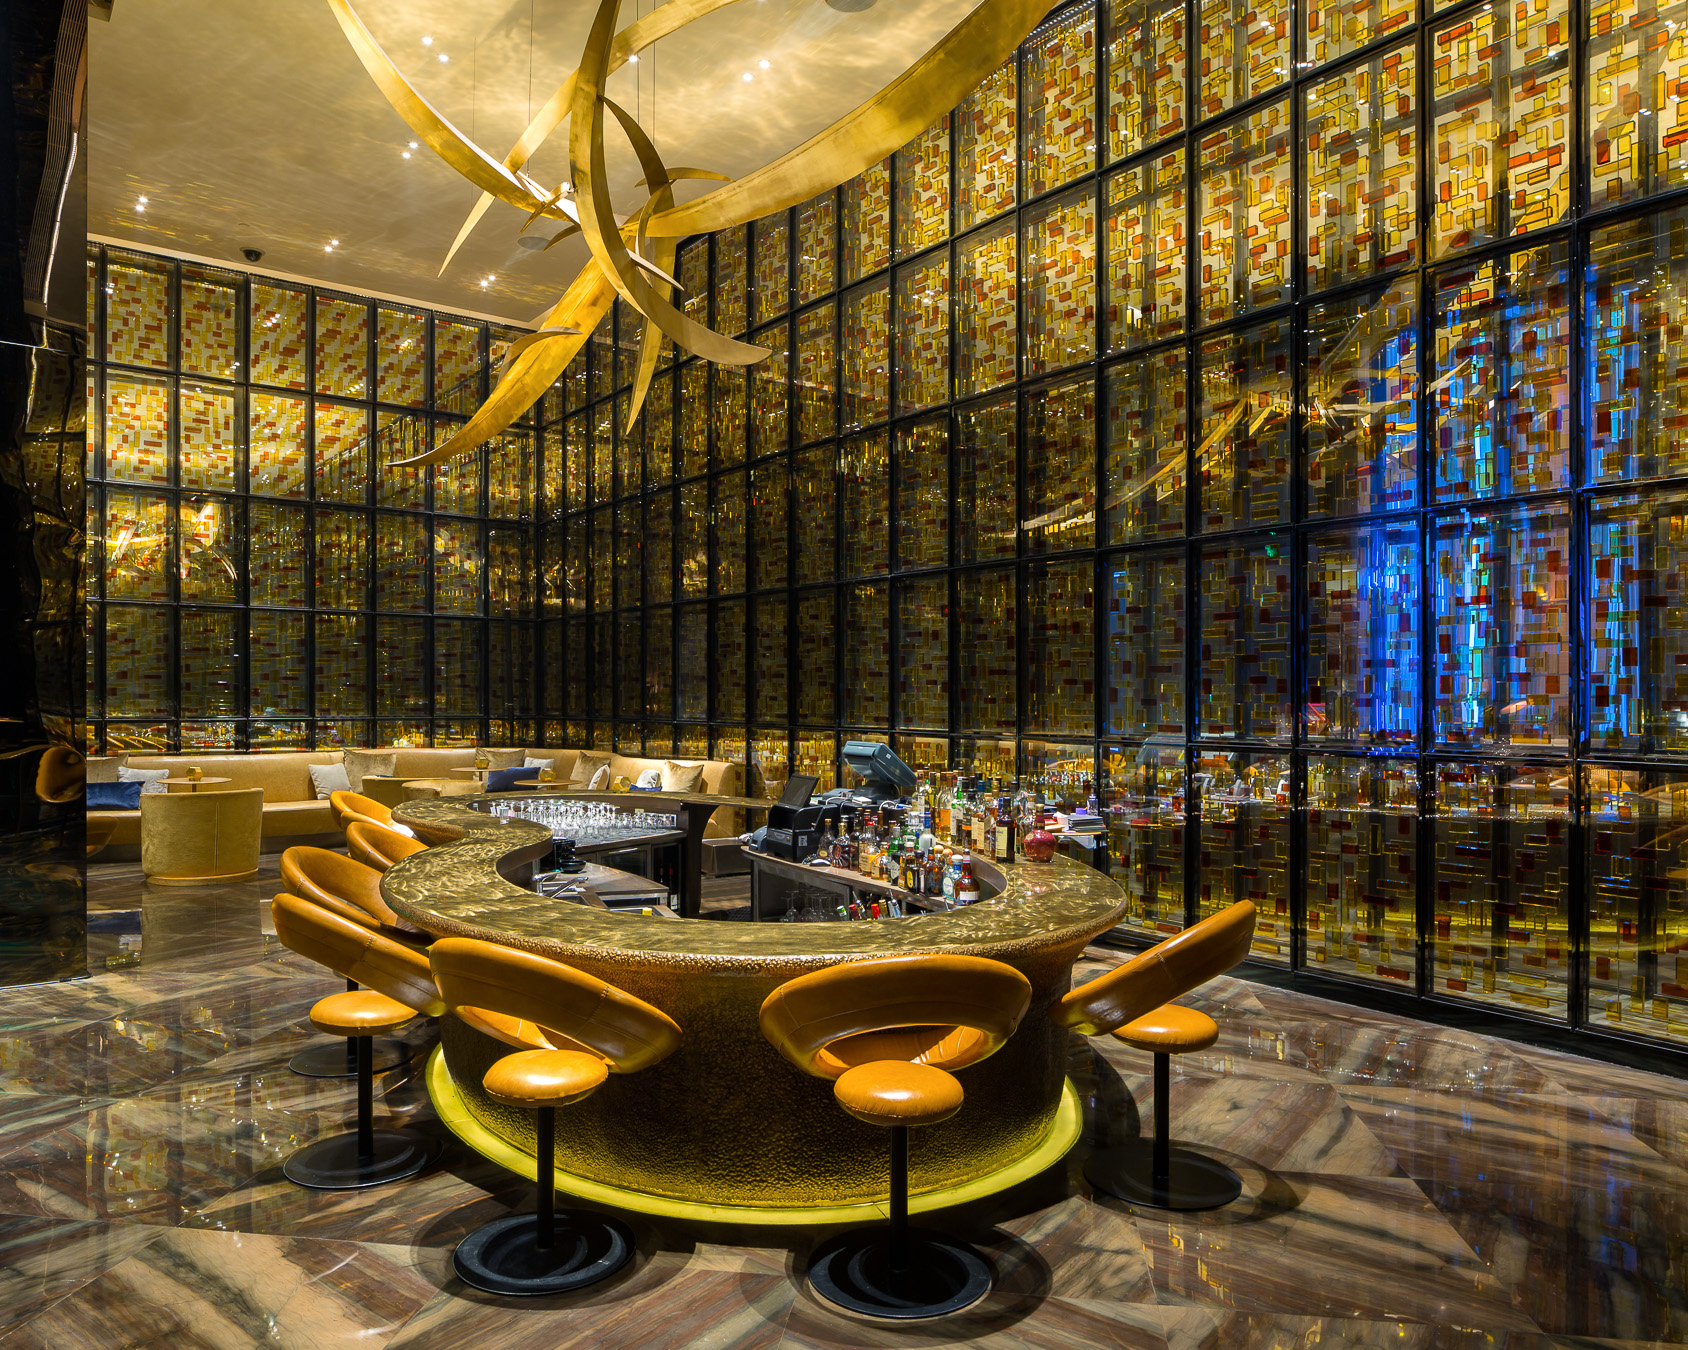 doublespace_photography_hospitality_hotel_W_Guangzhou_China-59.jpg